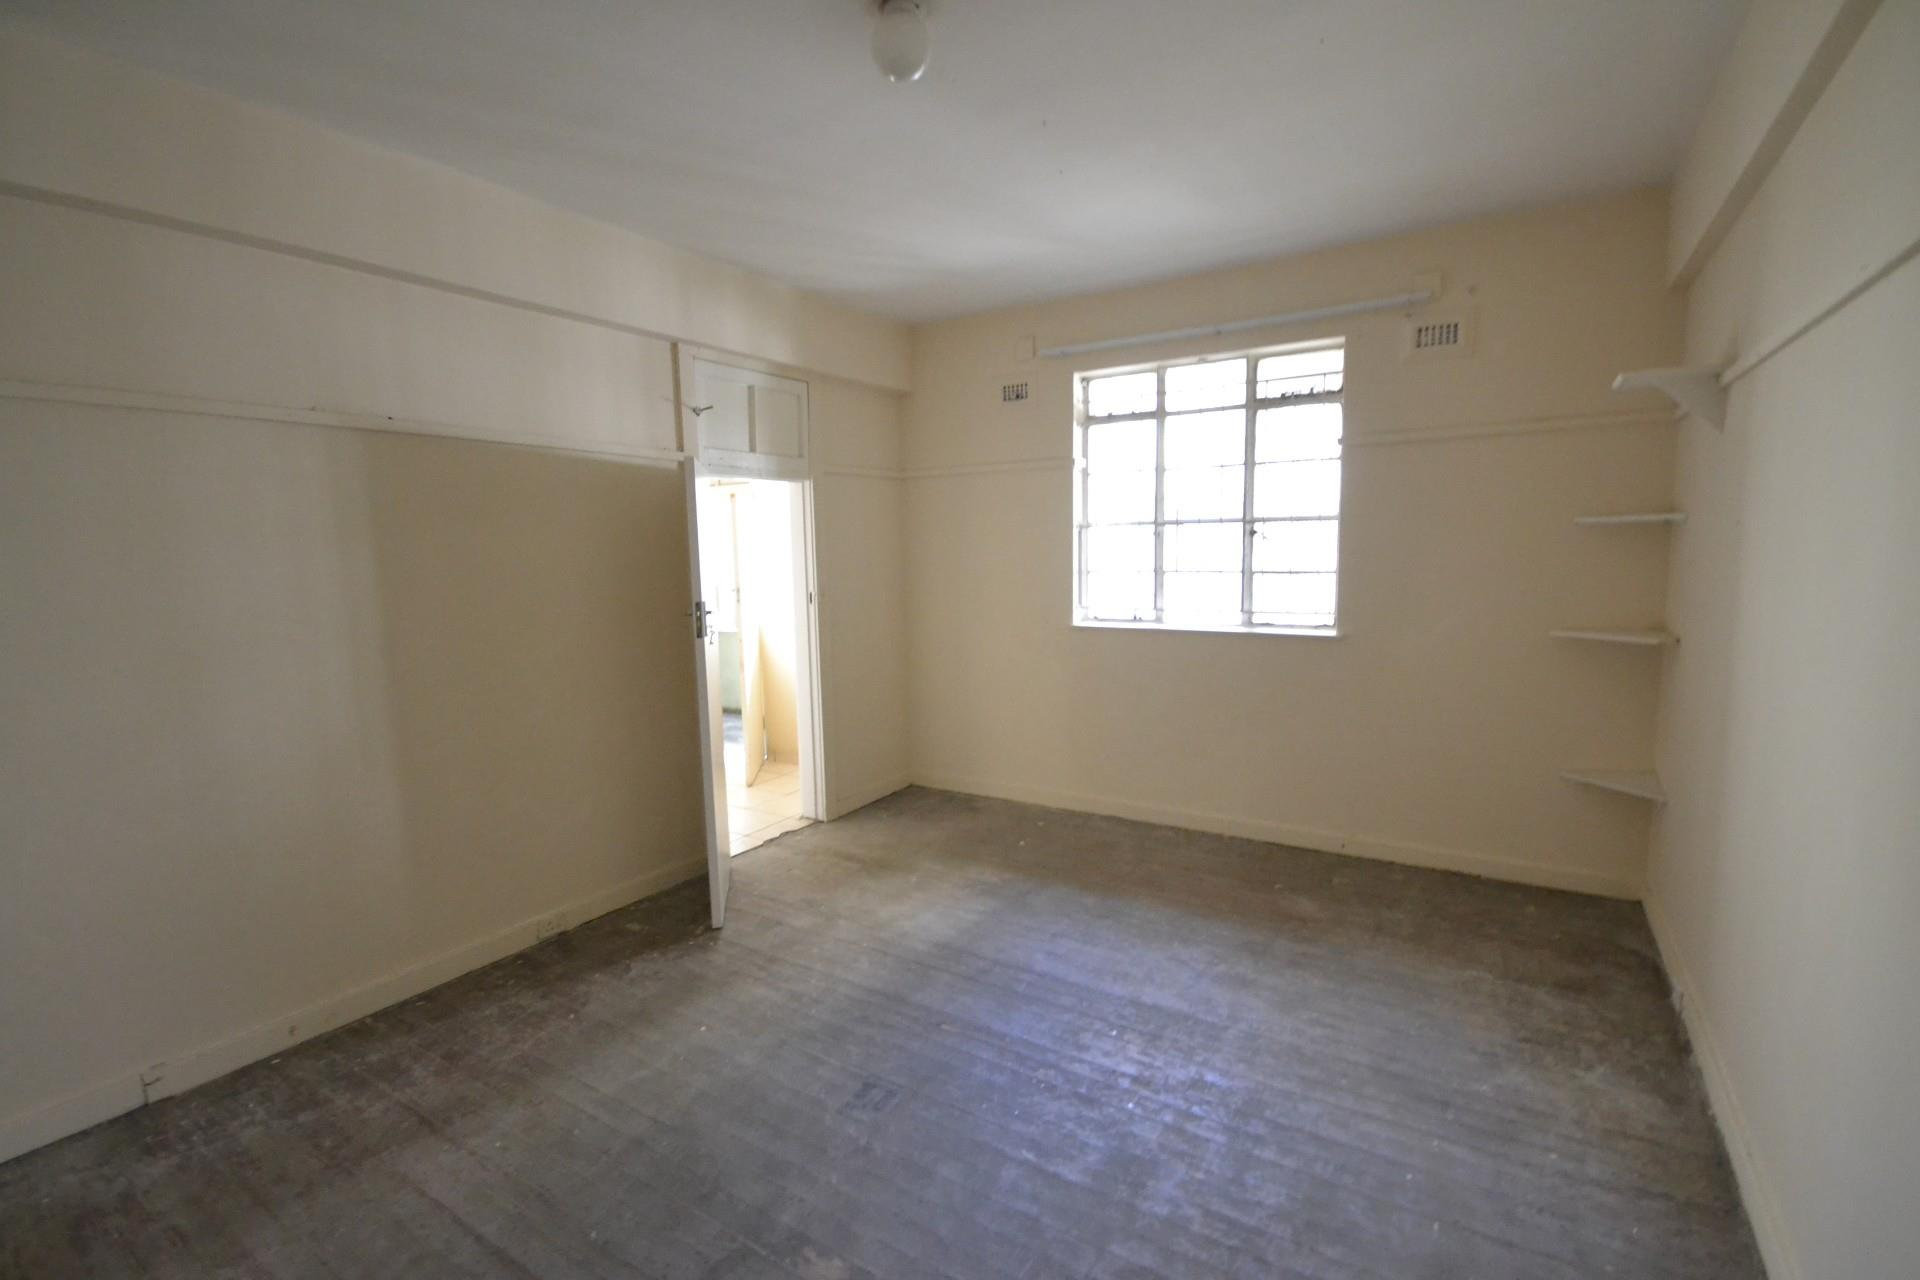 1 Bedroom Apartment / Flat To Rent in Kenilworth